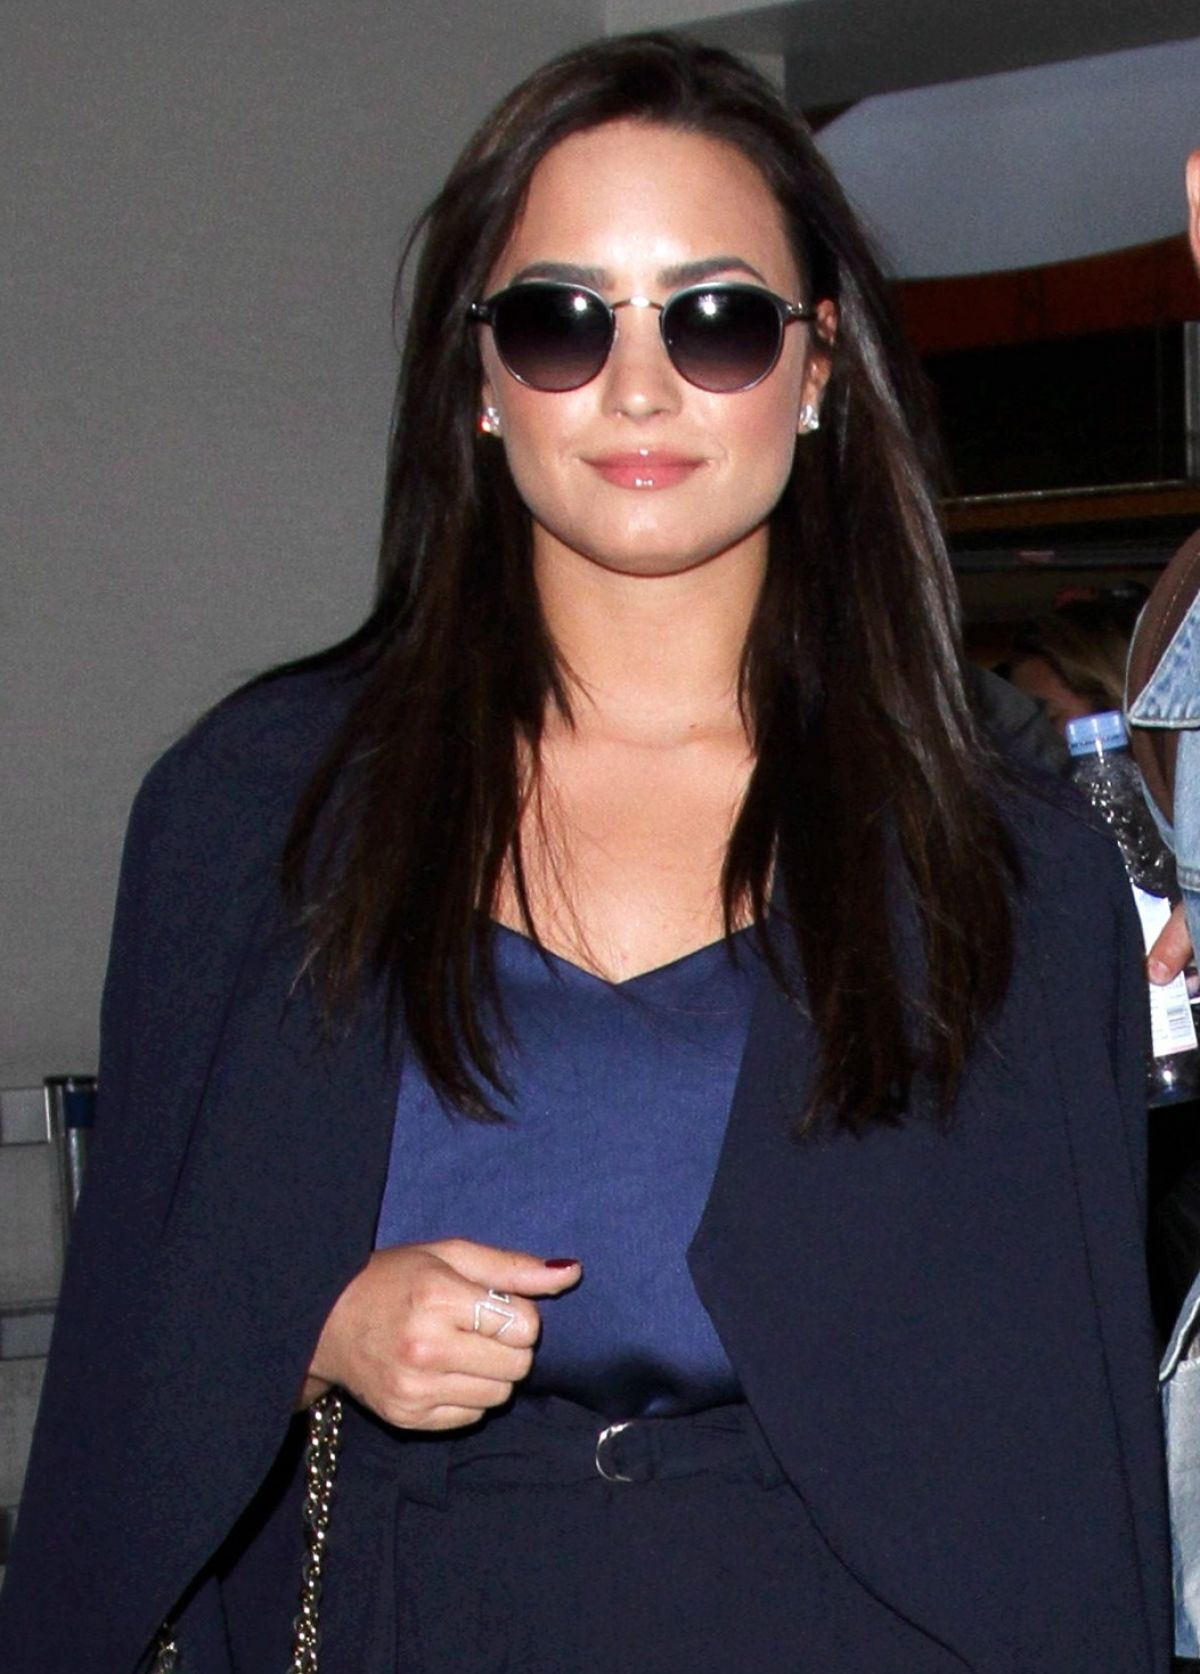 demi lovato - photo #16